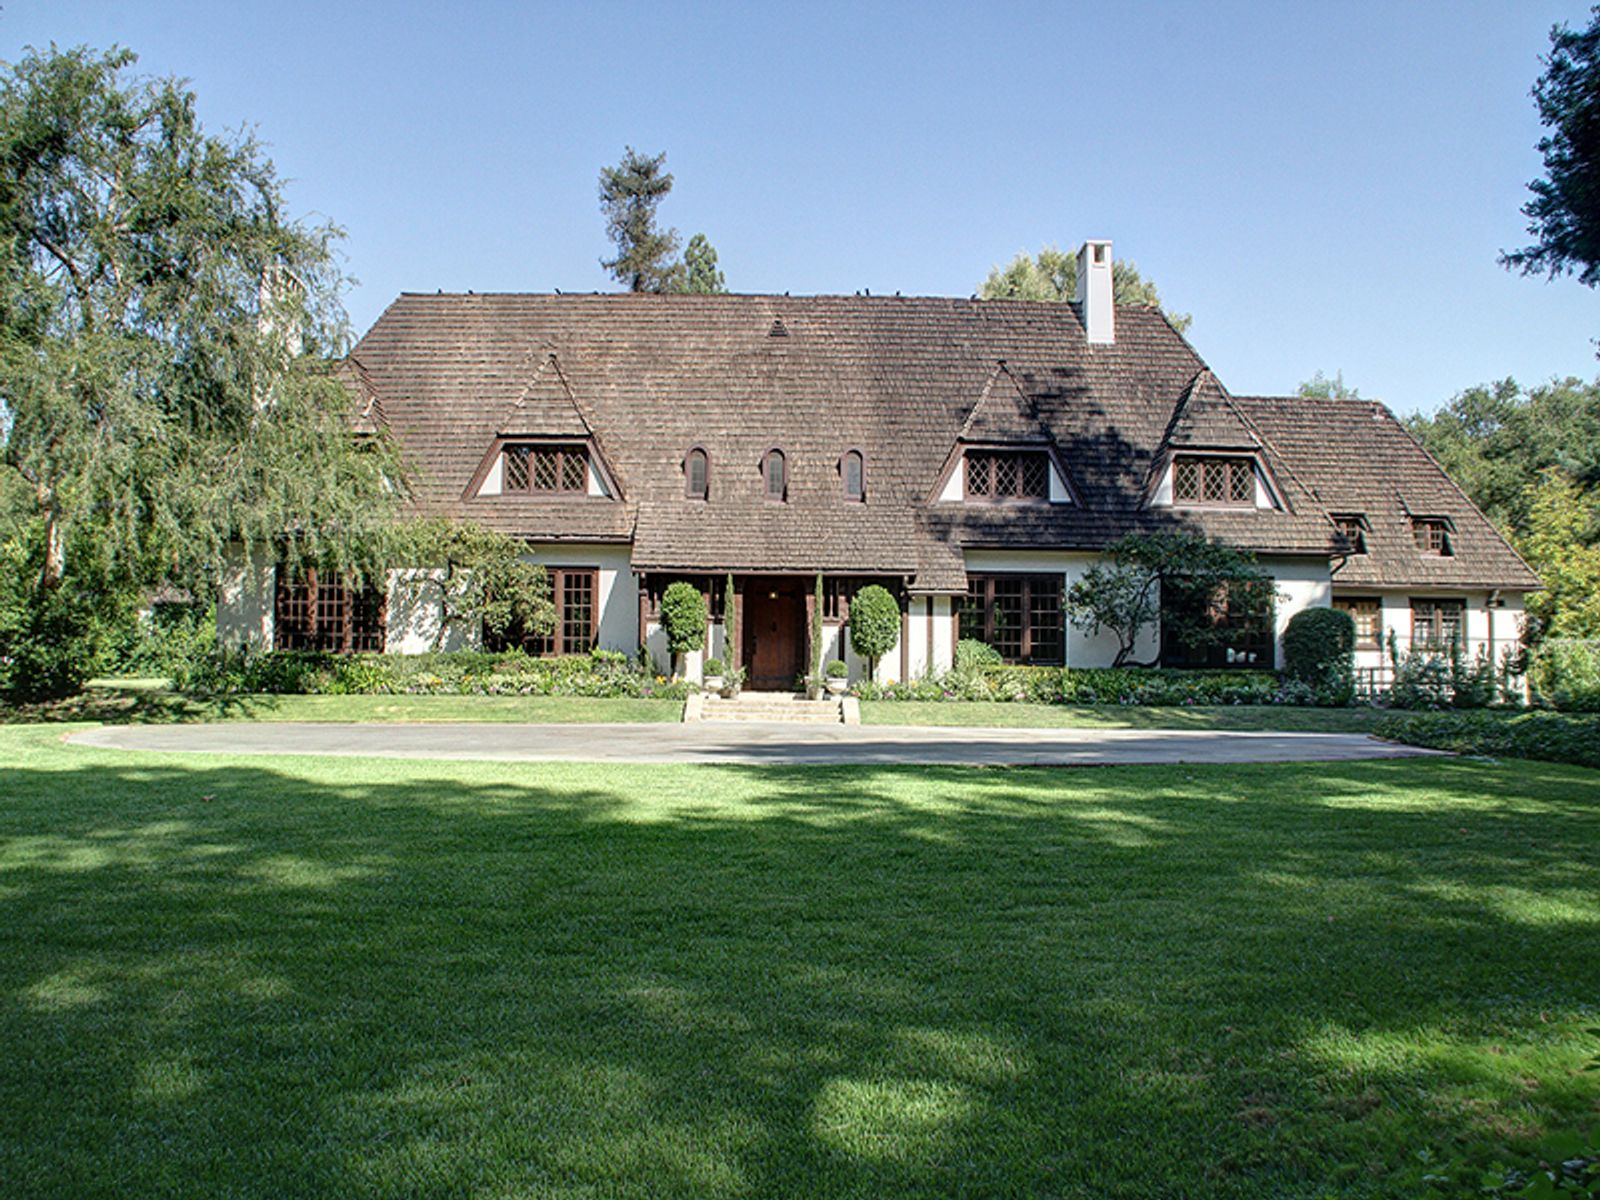 1915 English Manor, Pasadena CA Single Family Home - Pasadena Real Estate